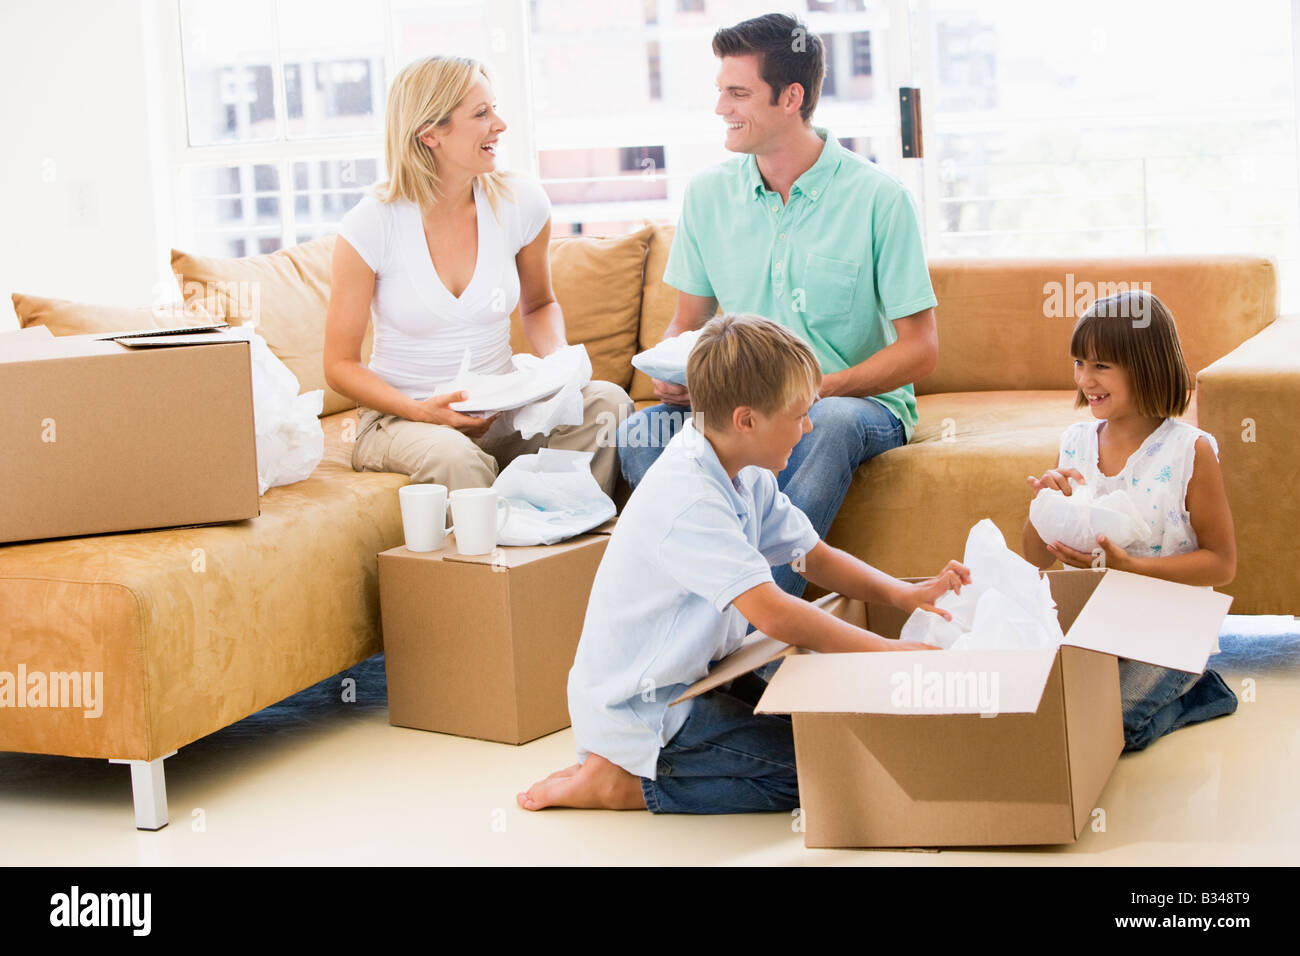 Family unpacking boxes in new home smiling Photo Stock